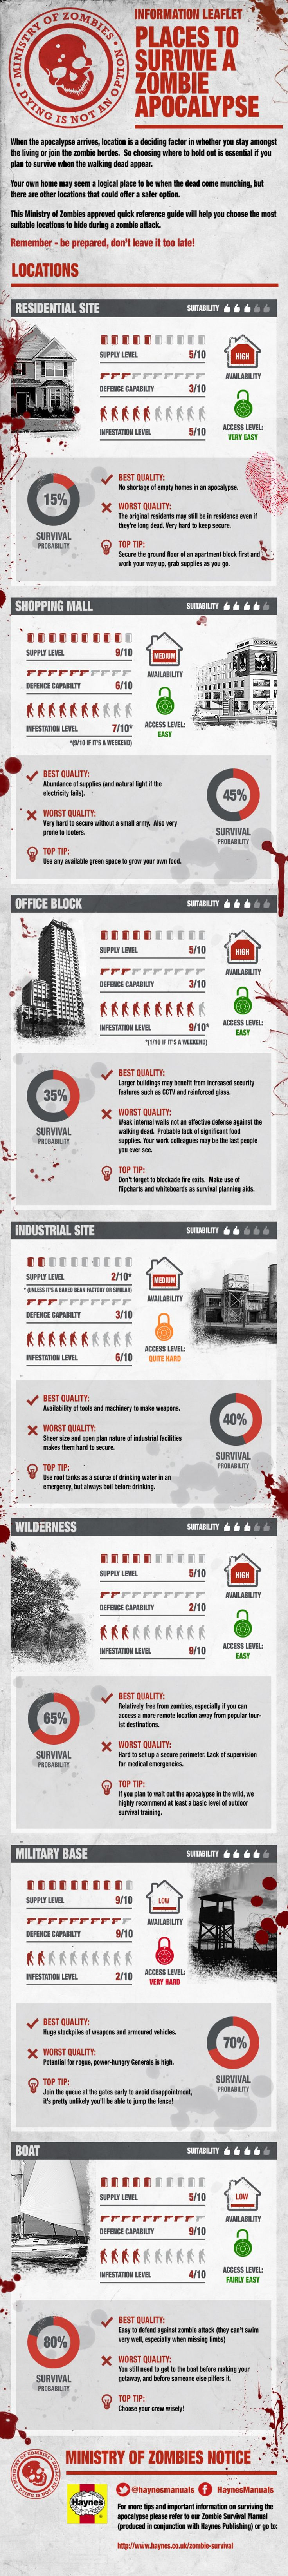 Places To Survive A Zombie Apocalypse #Infographic #Zombie